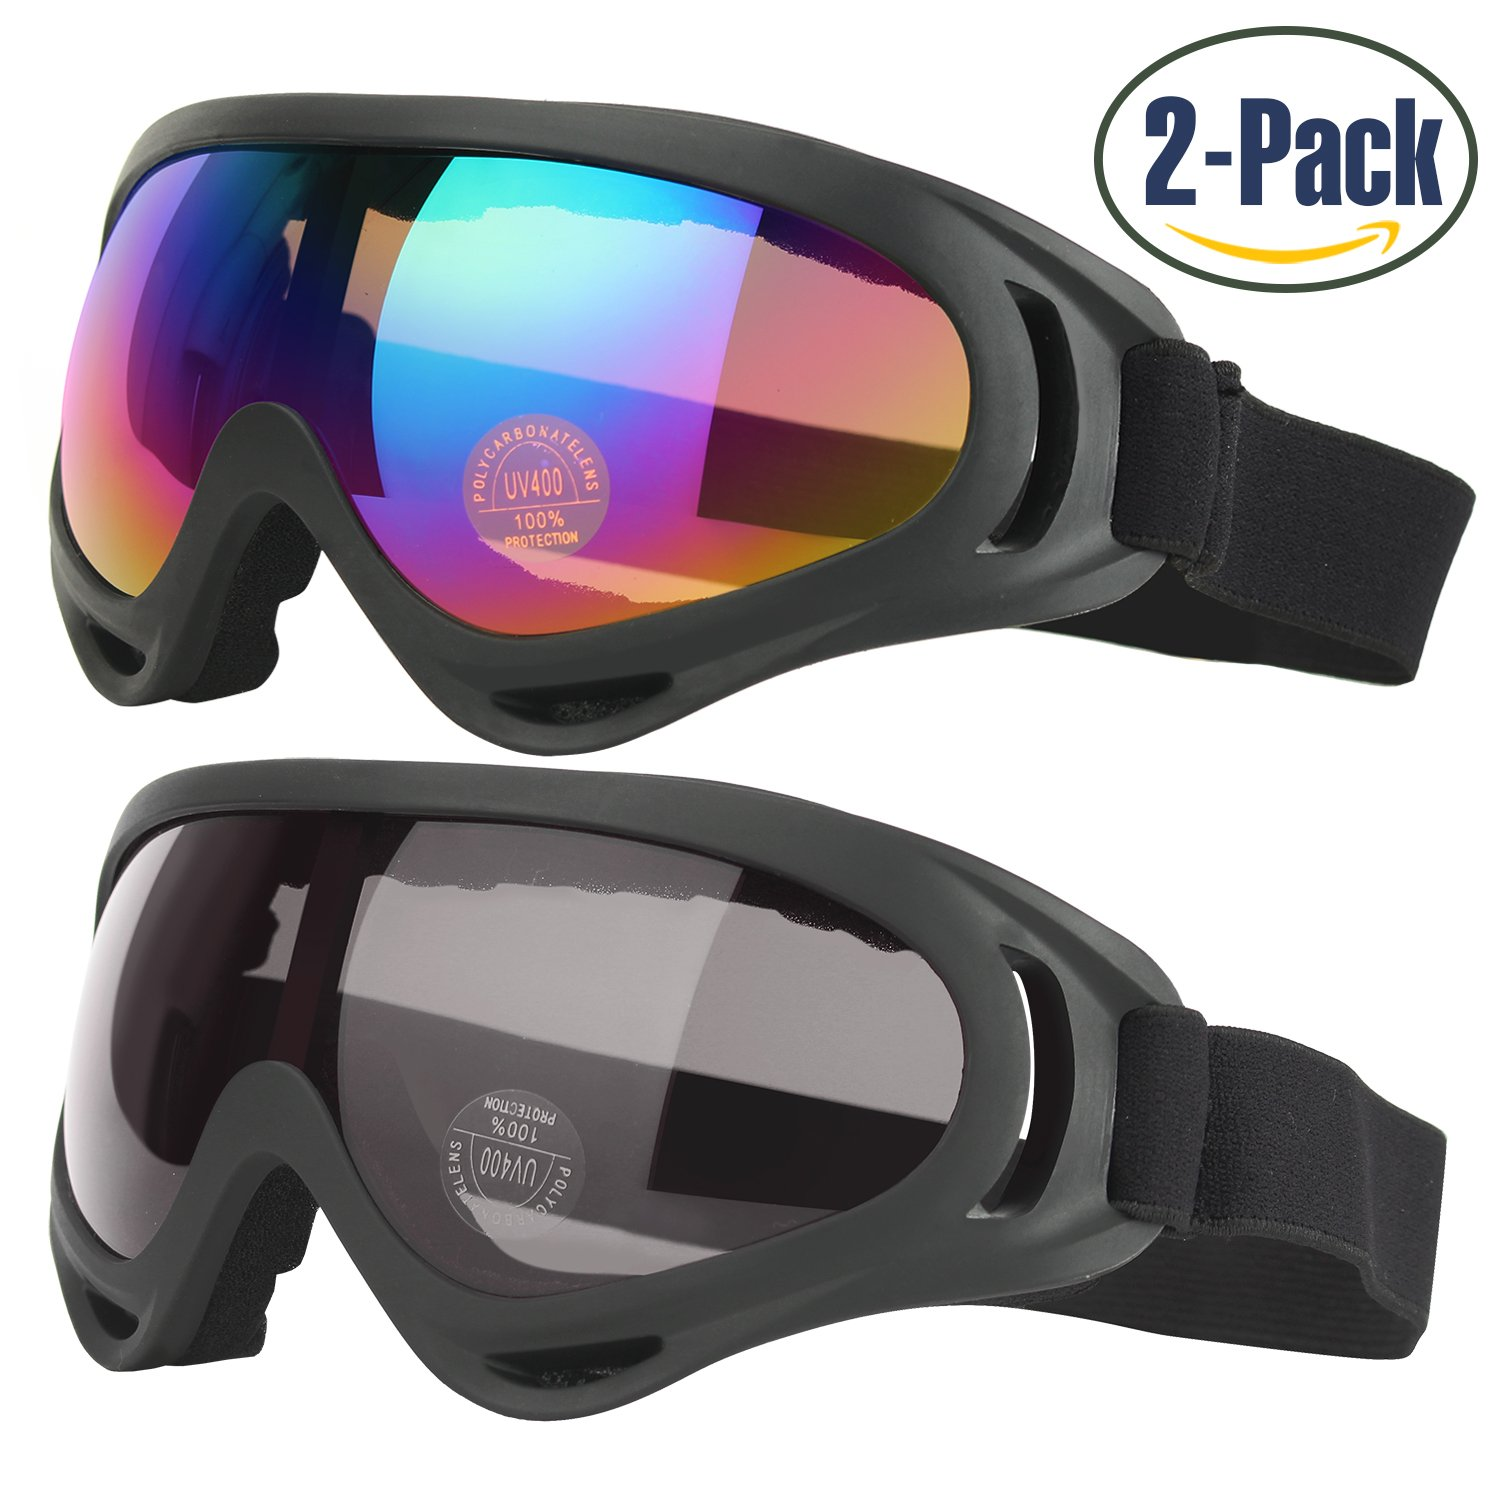 goggles eyewear  Amazon.com : Ski Goggles, Pack of 2, Skate Glasses for Kids, Boys ...